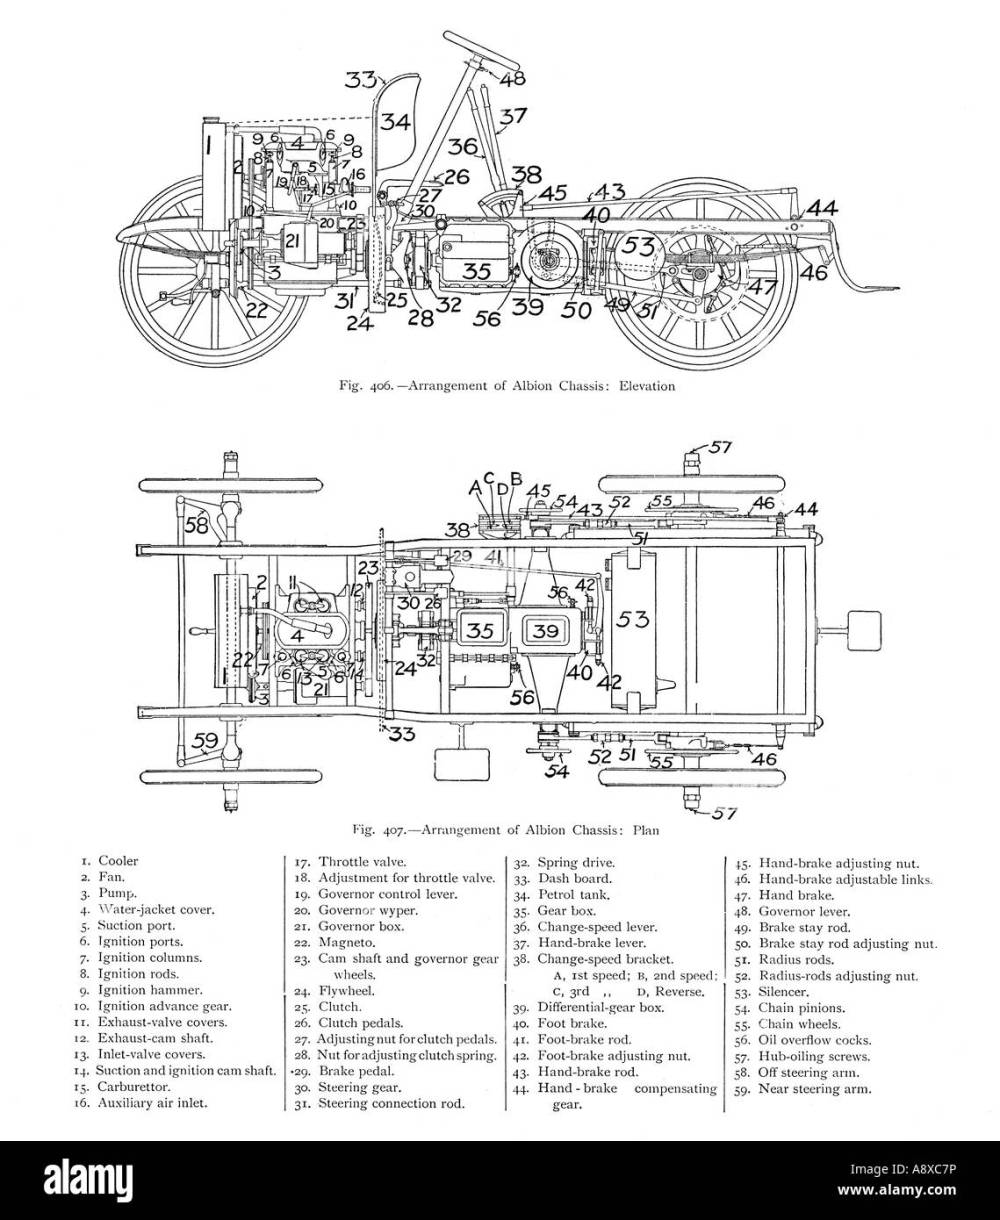 medium resolution of diagram of albion 6 horse power petrol engine car stock image